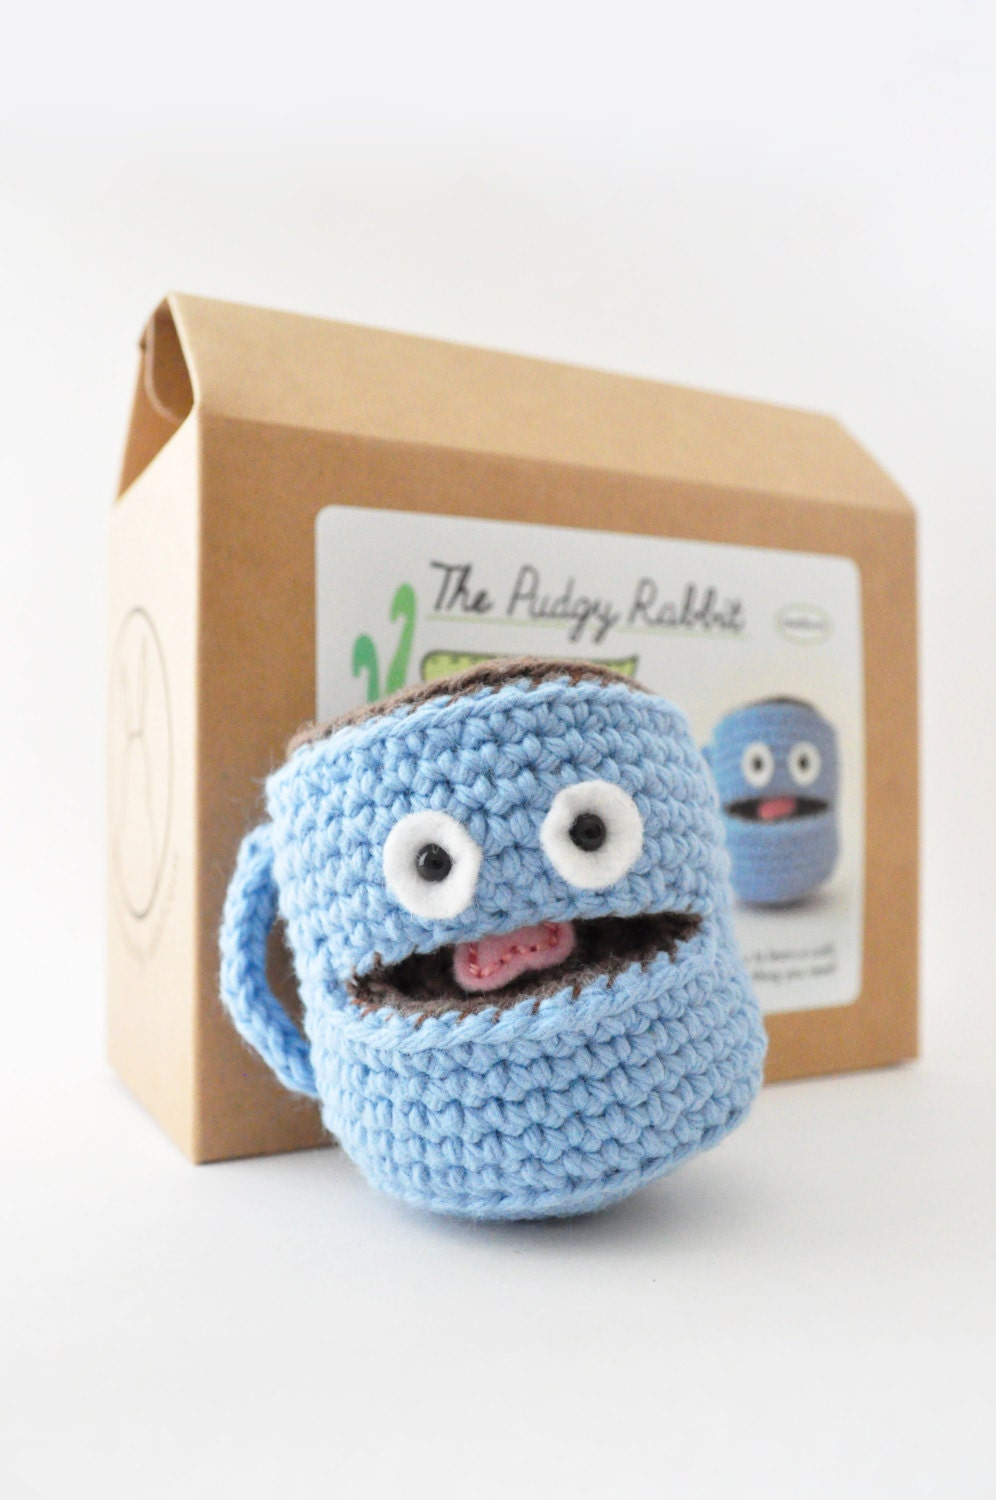 Amigurumi coffee mug kit crochet kit diy craft kit learn to for Coffee mug craft kit